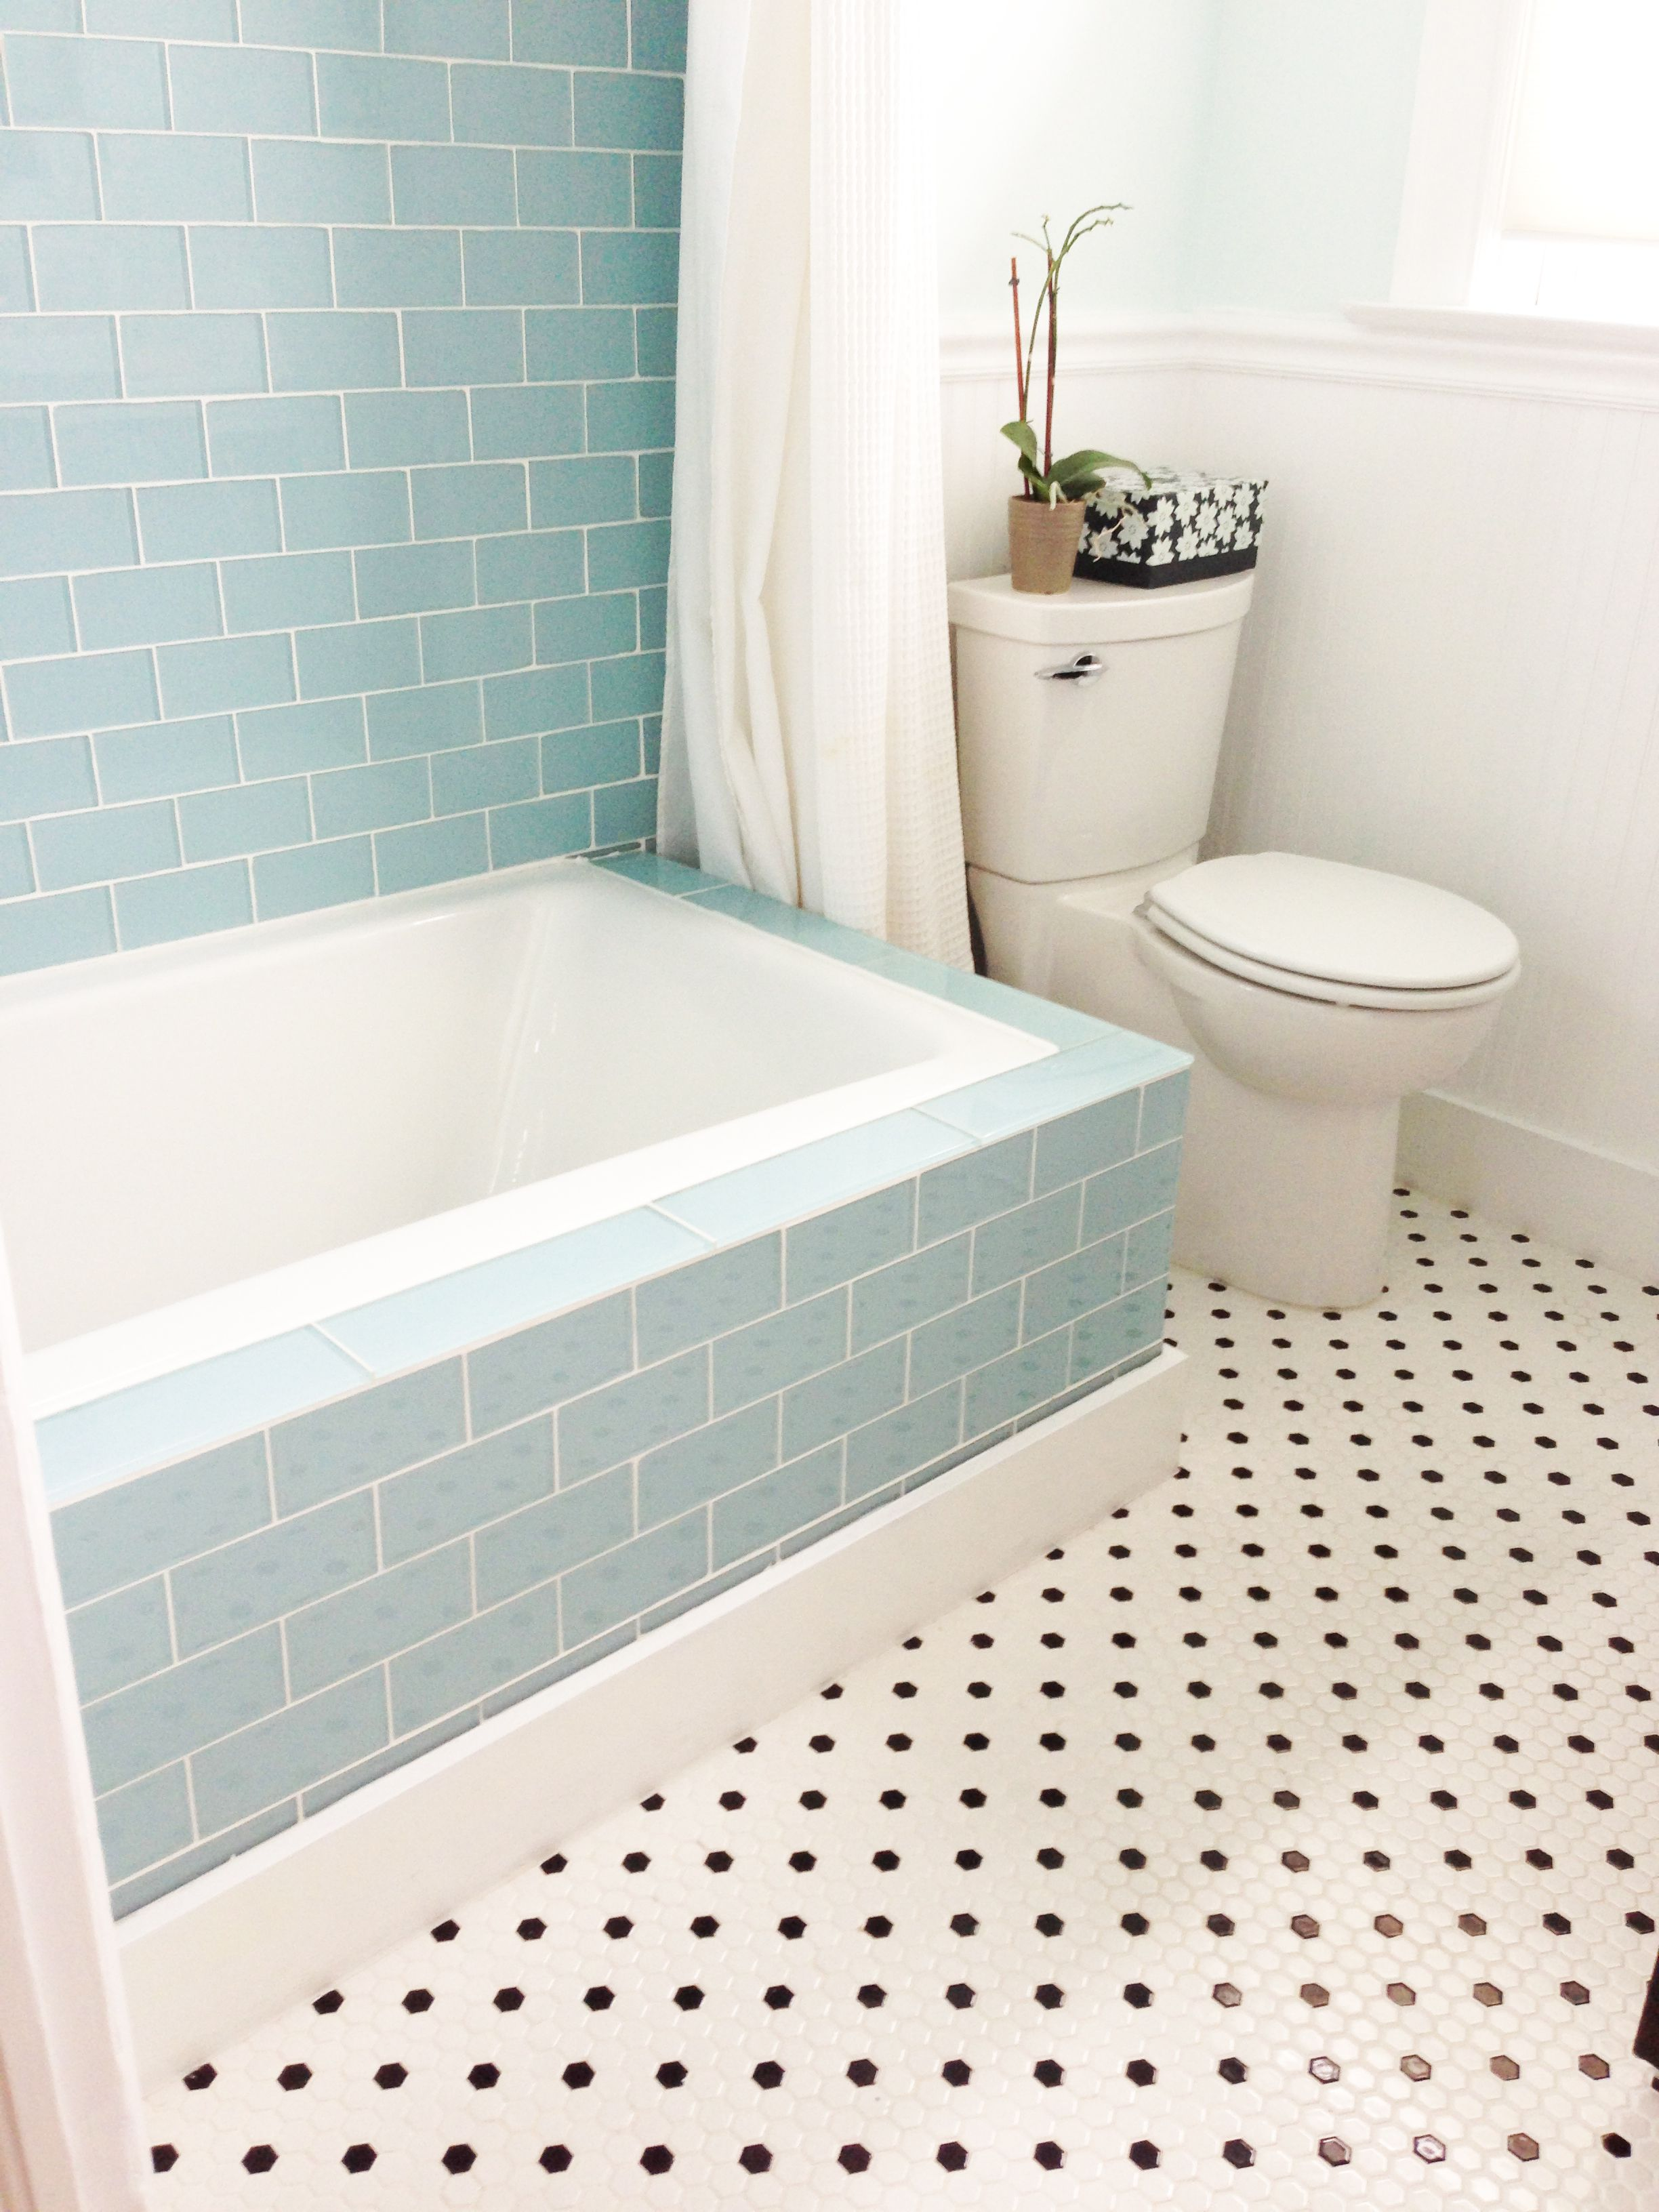 Vapor Glass Subway Tile | Pinterest | Bathtub surround, Subway tiles ...